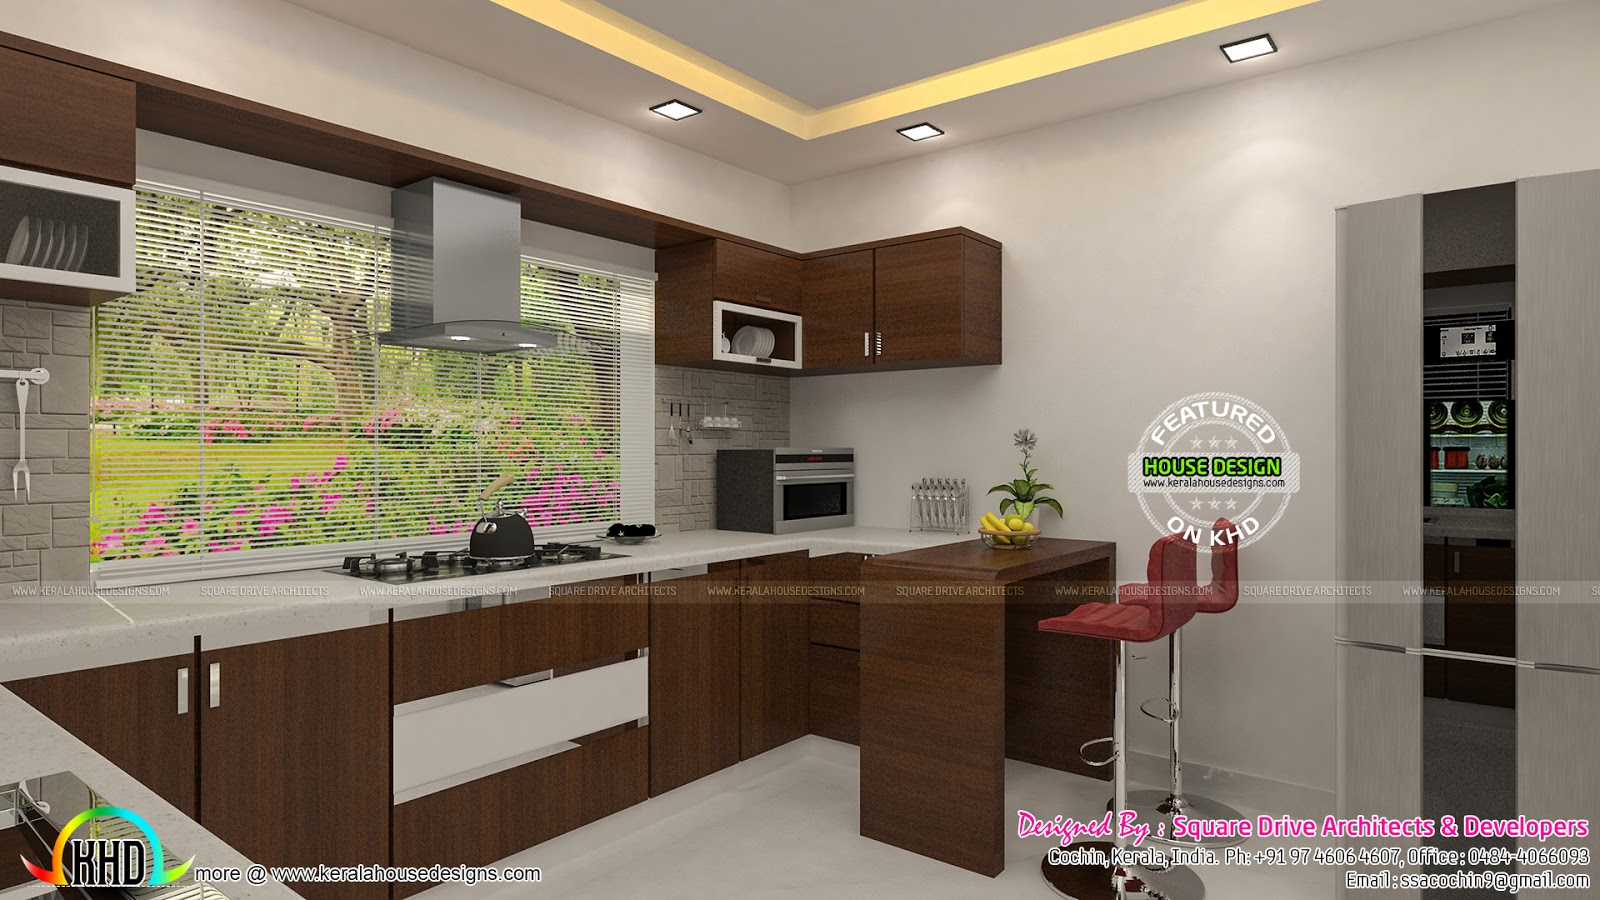 Guest Bedroom Kitchen Interiors Kerala Home Design And Floor Plans